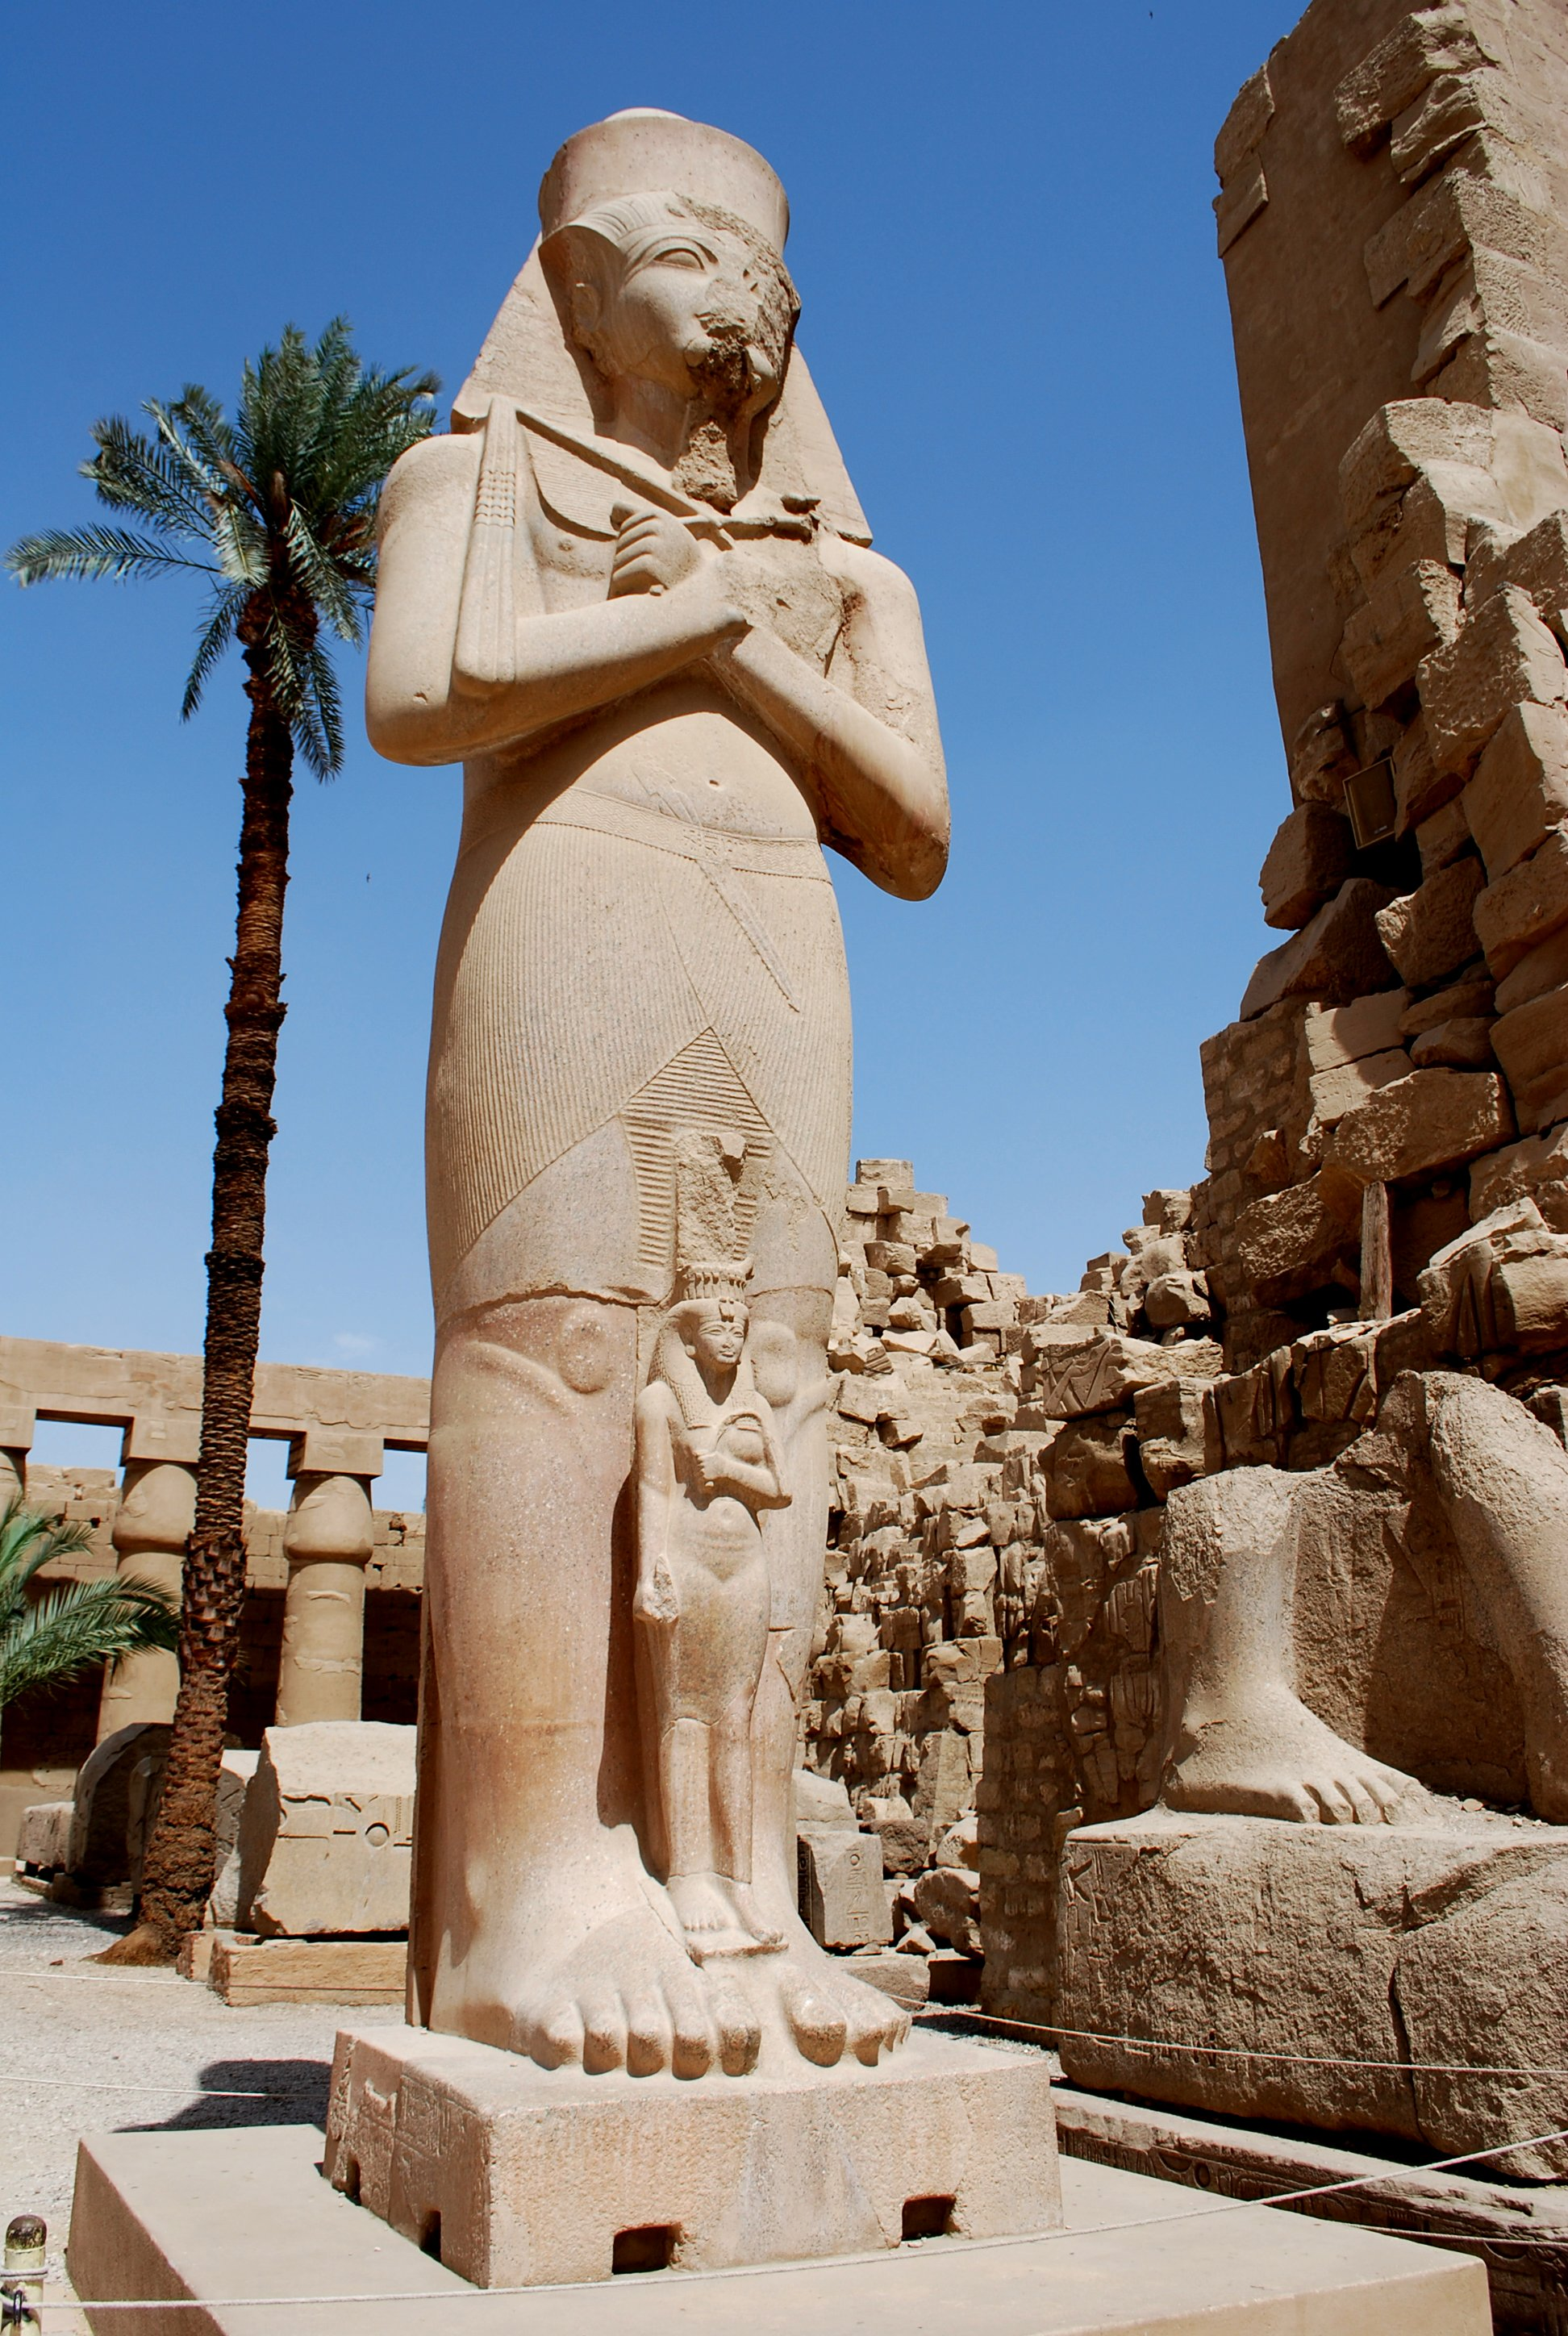 The colossal statue of Pinudjem I from the first court at Karnak